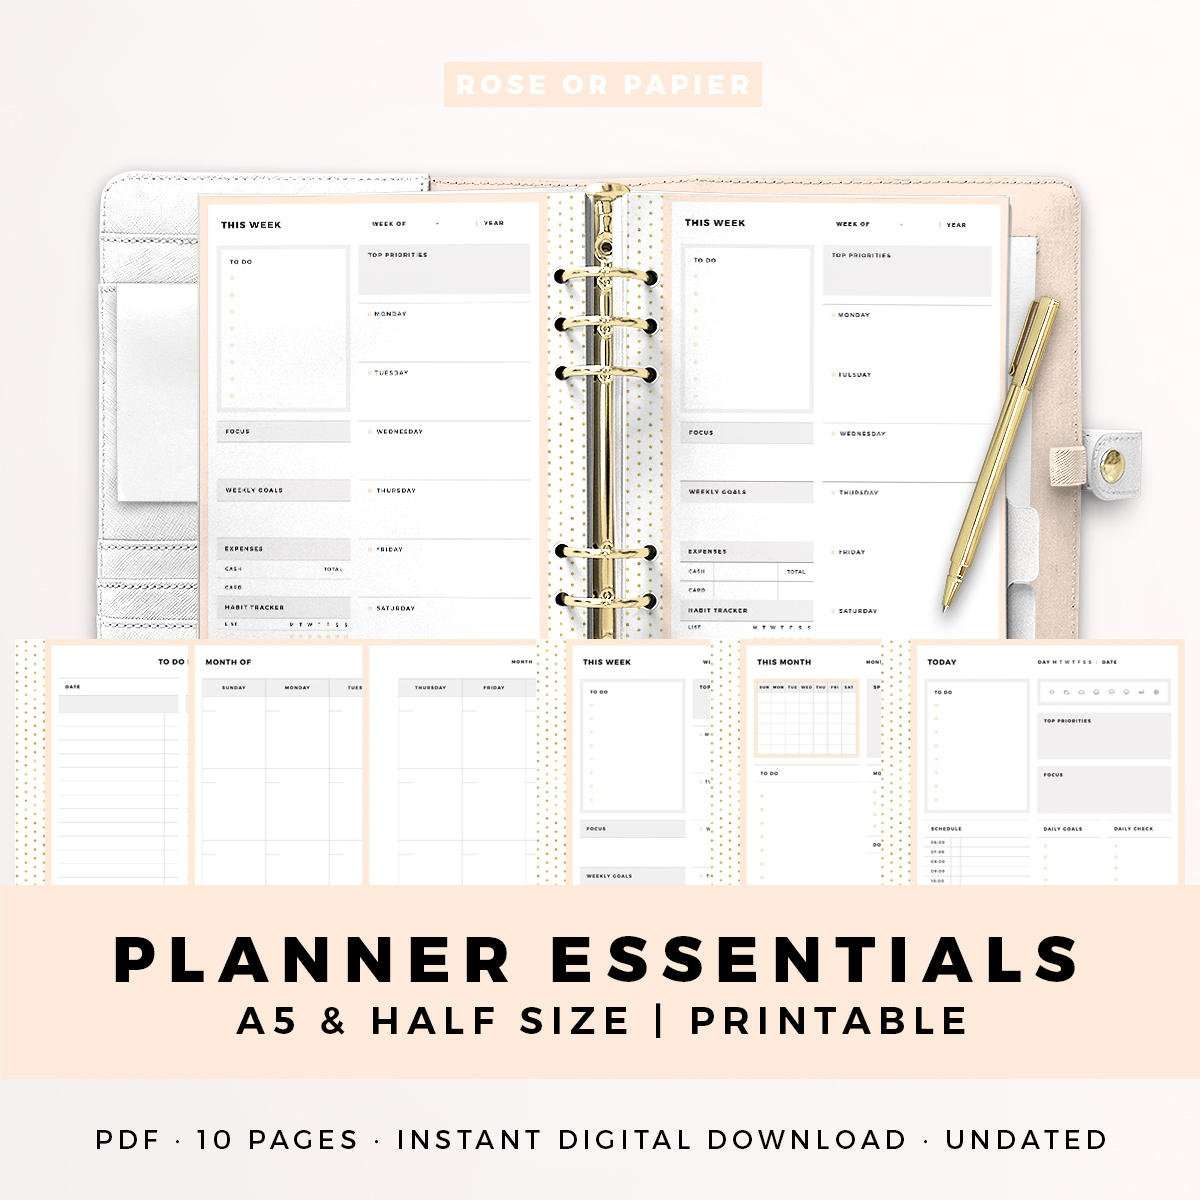 Bundle A5 Half Size Printable Planner Inserts Planner   Etsy pertaining to What Are The Measurements Of An A5 Planner